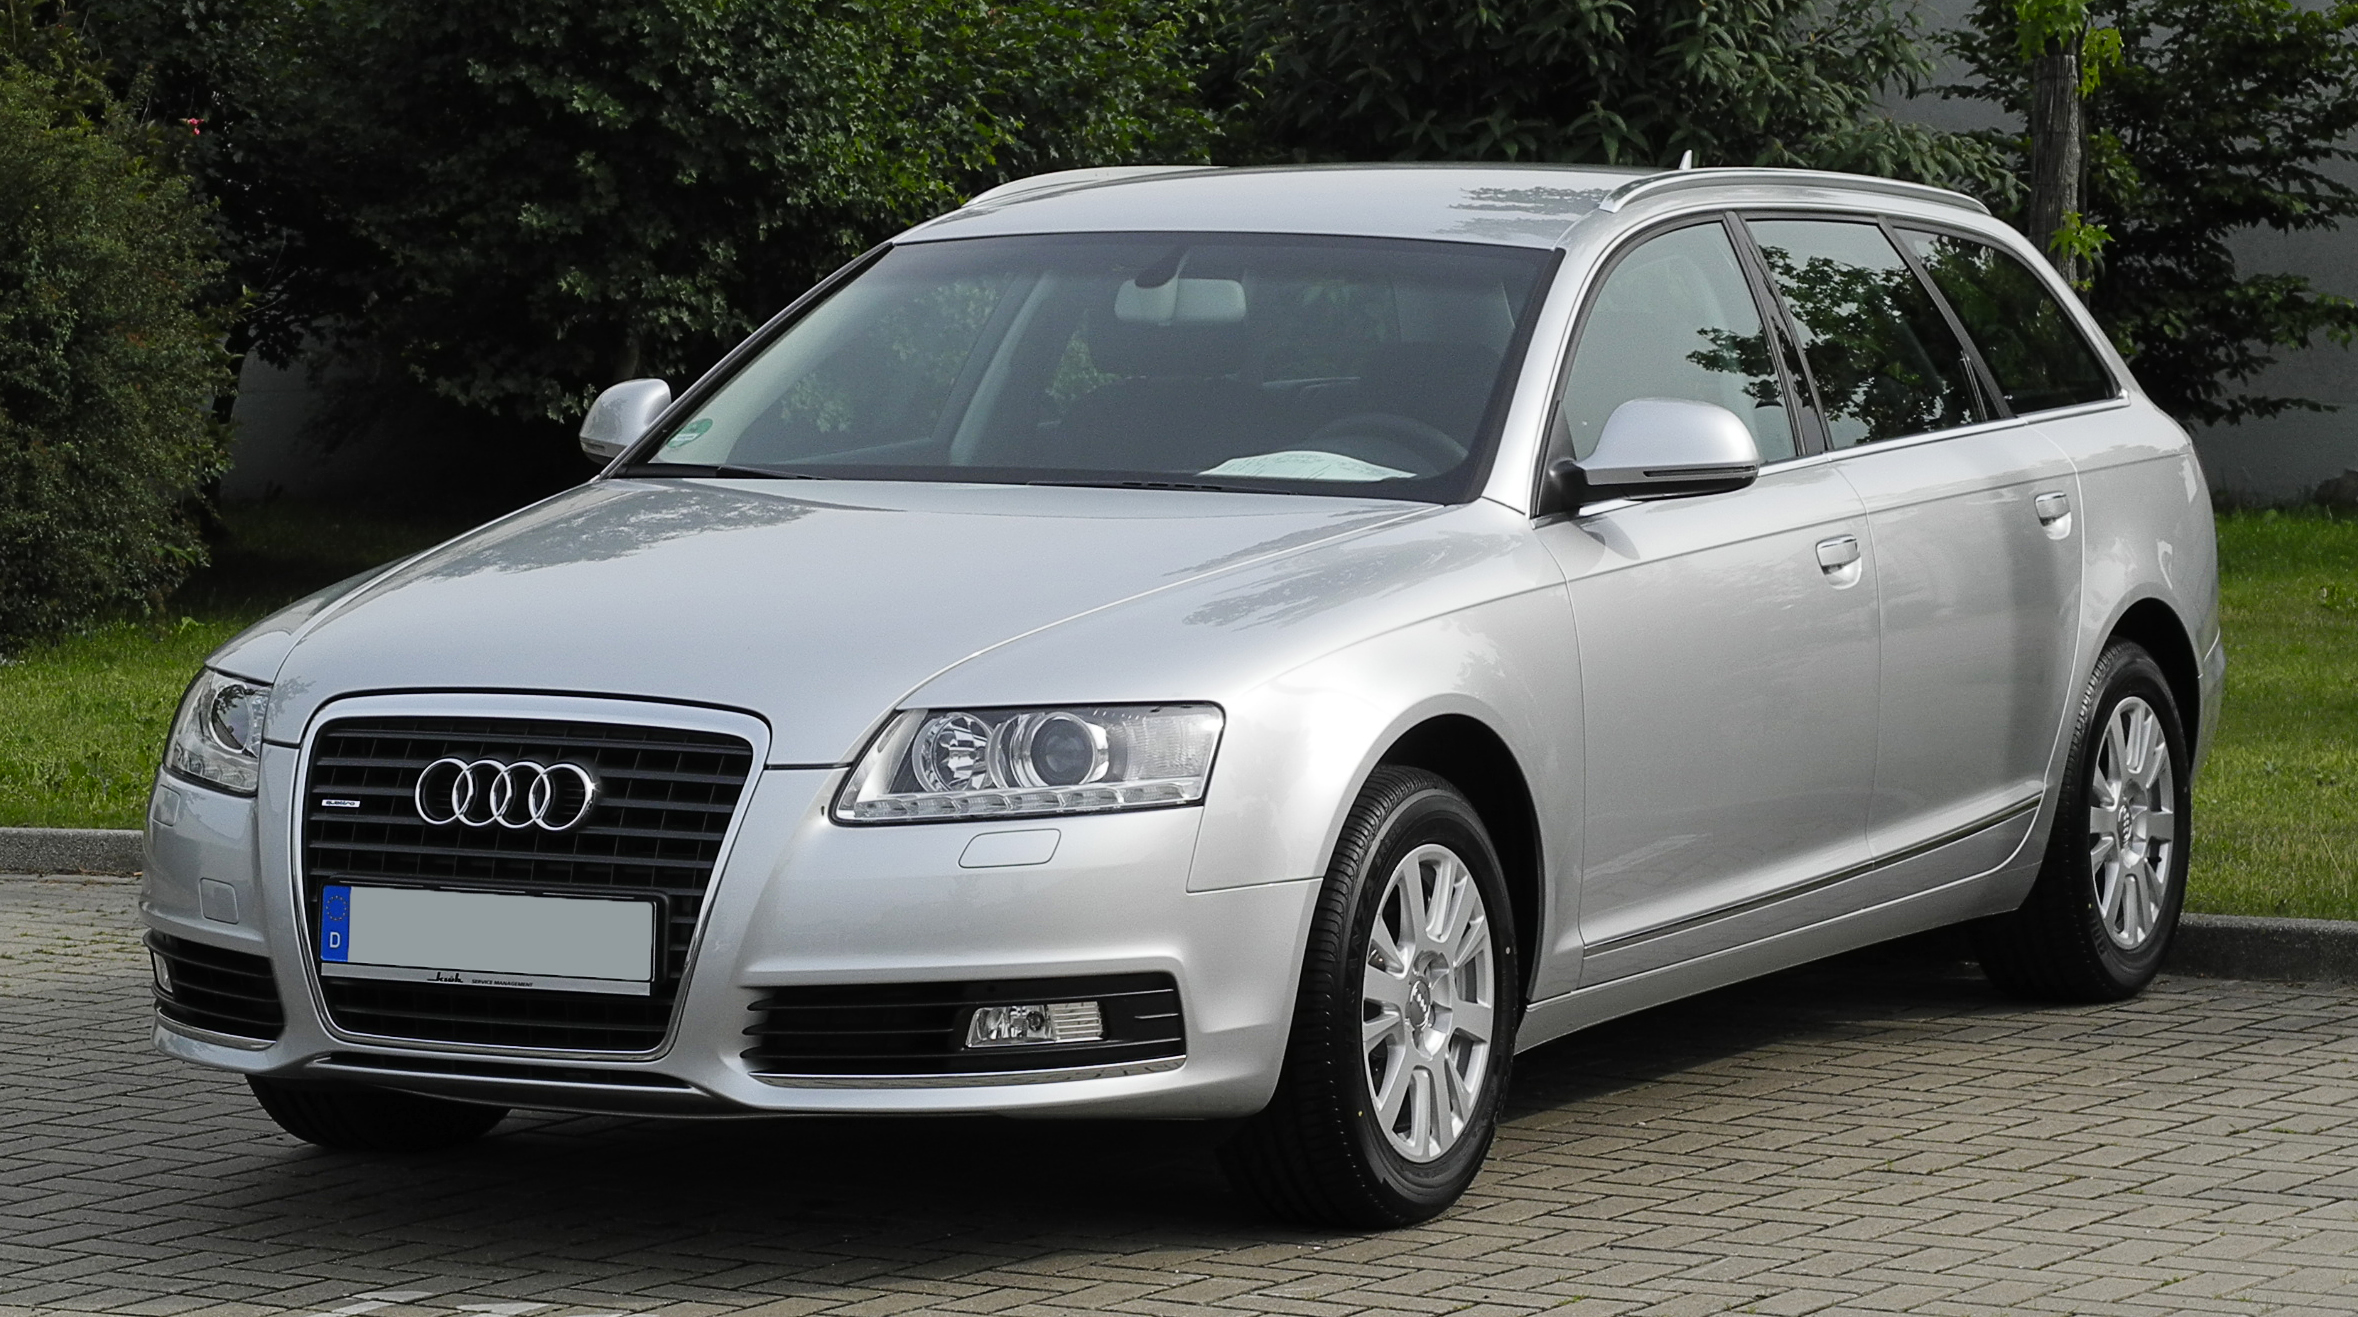 2006 Audi A6 avant (4f,c6) - pictures, information and ...